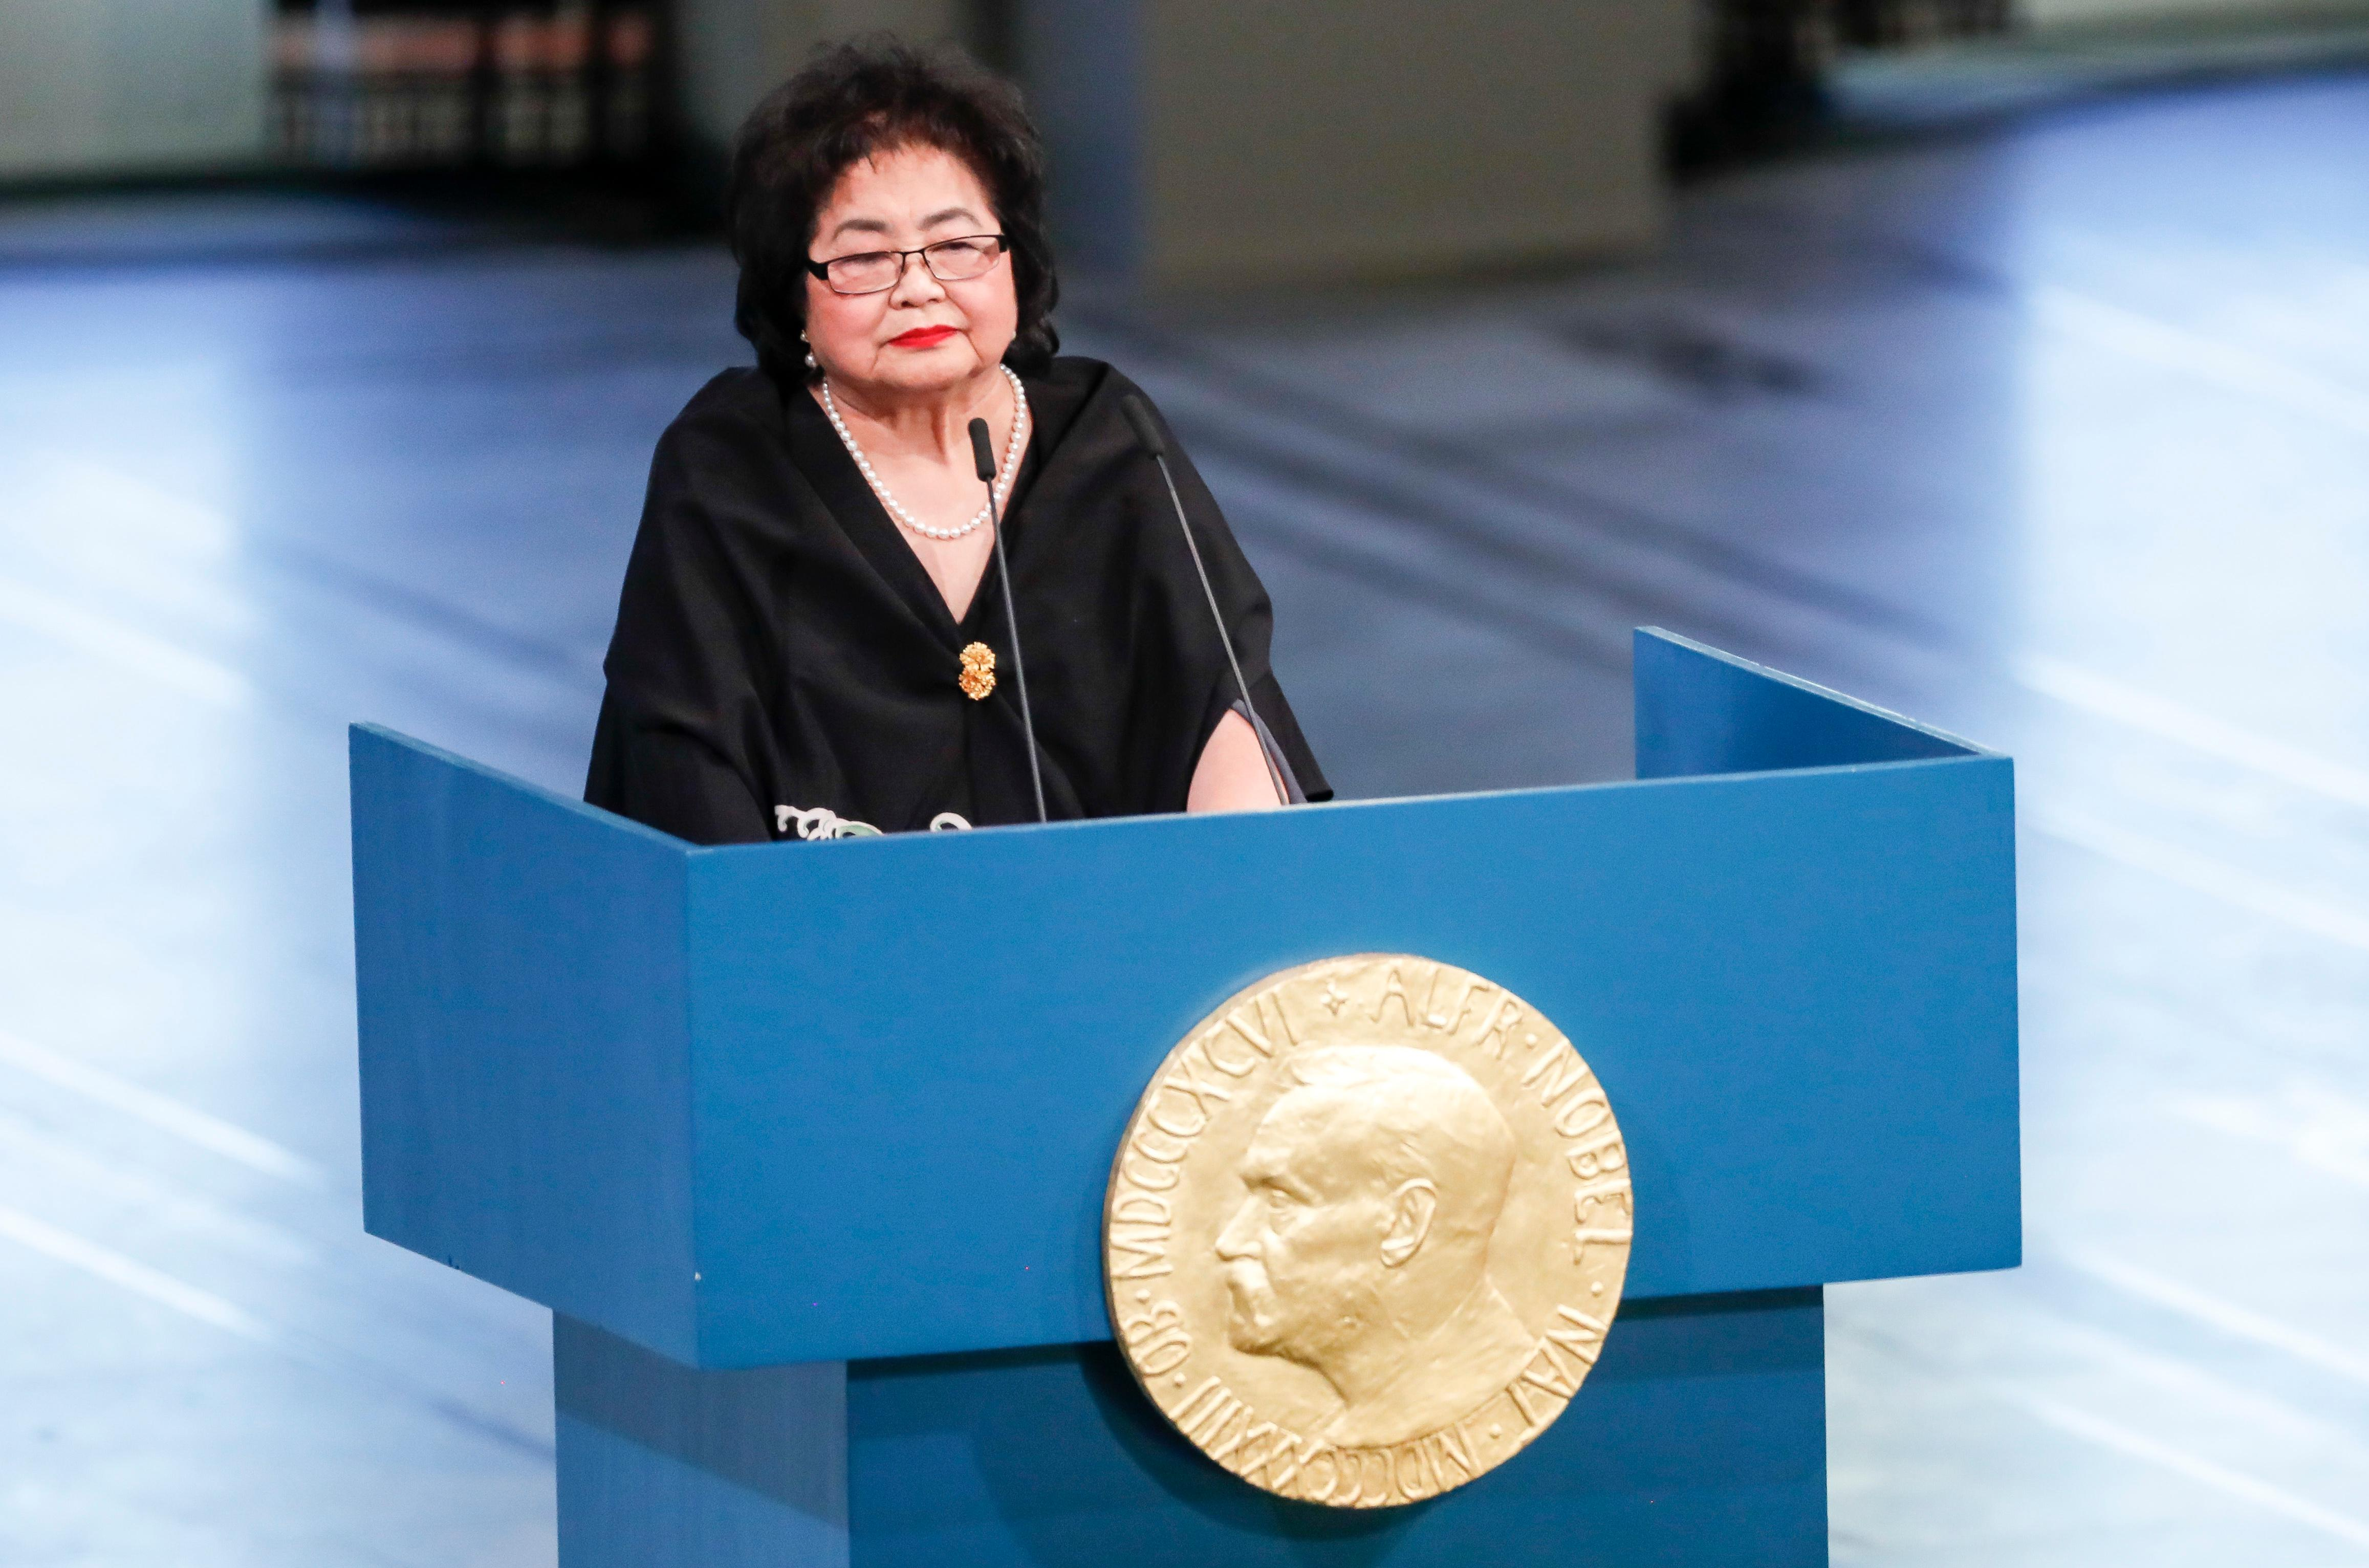 International Campaign to Abolish Nuclear Weapons (ICAN), activist and Hiroshima survivor Setsuko Thurlow speaks in Oslo City Hall after the ICAN officially received the Nobel Peace Prize 2017, in Oslo, Norway. (Terje Bendiksby/ NTB scanpix via AP)